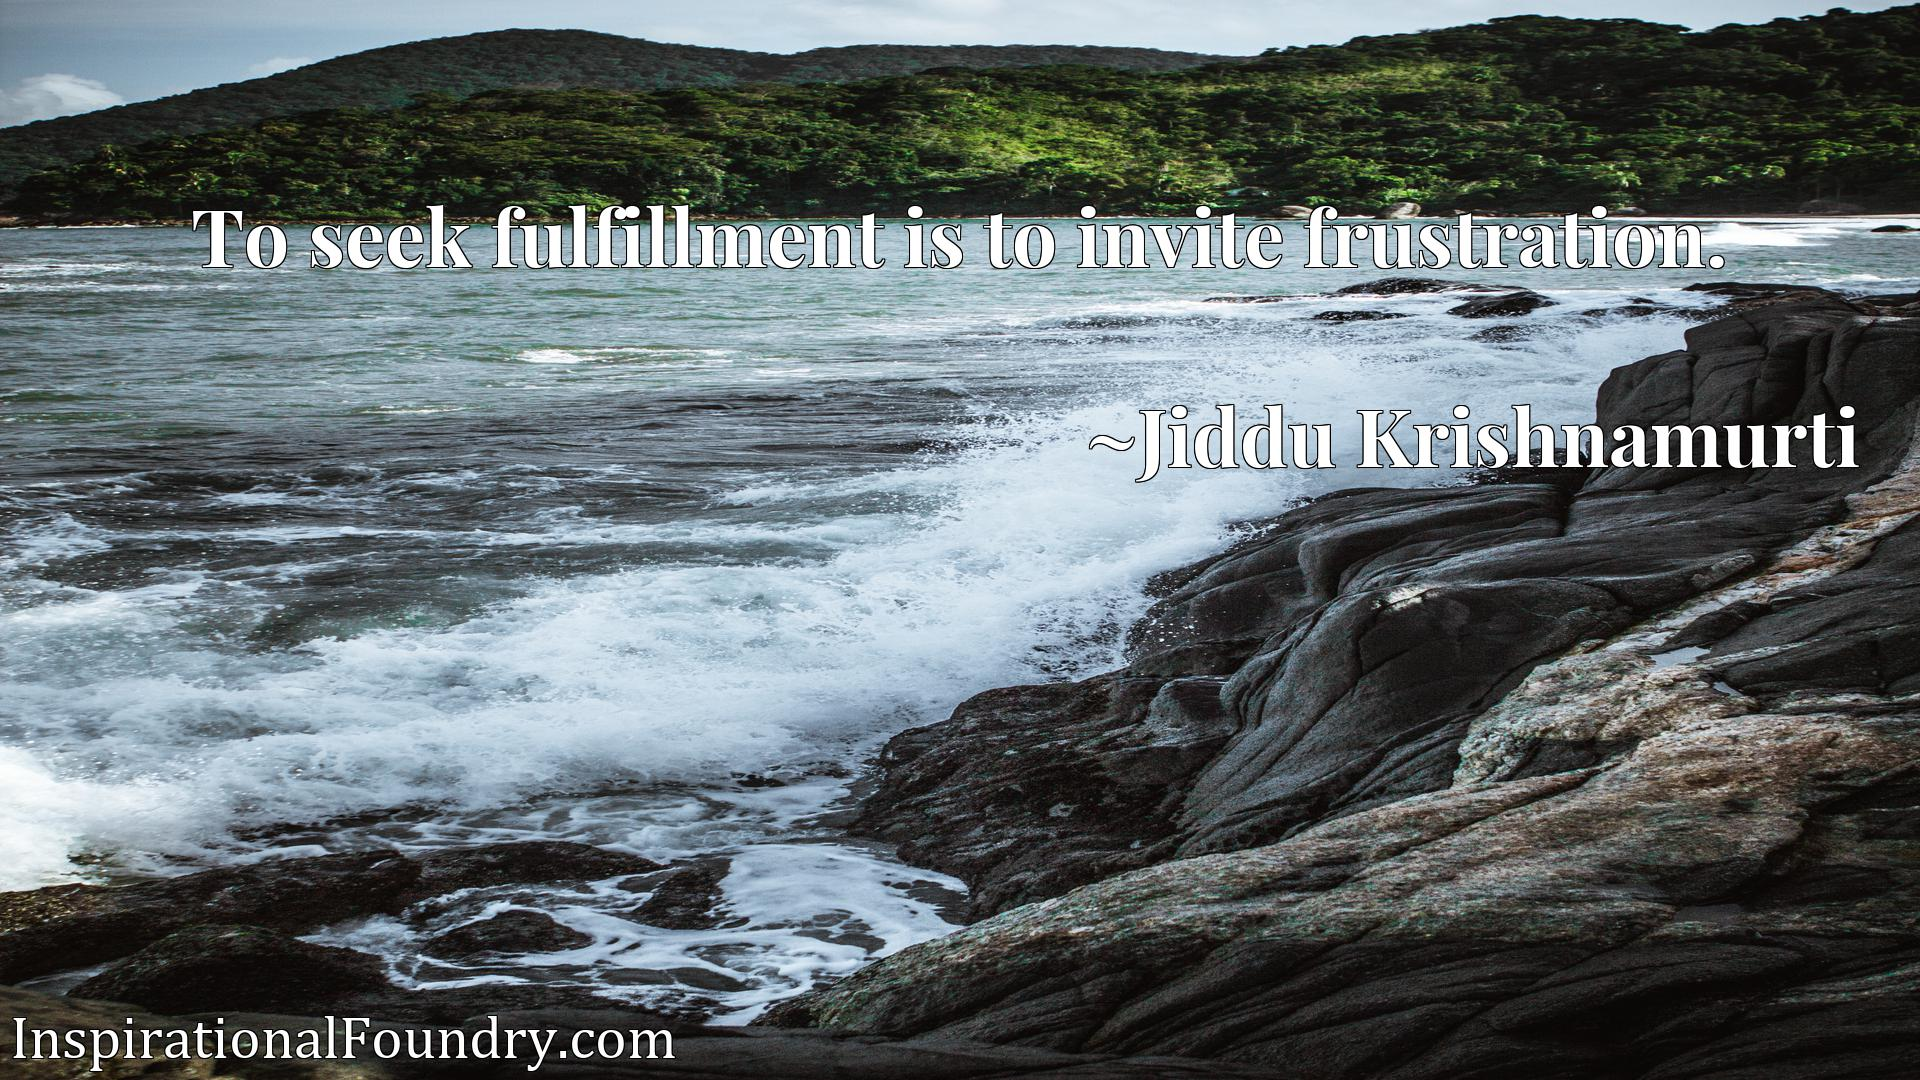 To seek fulfillment is to invite frustration.